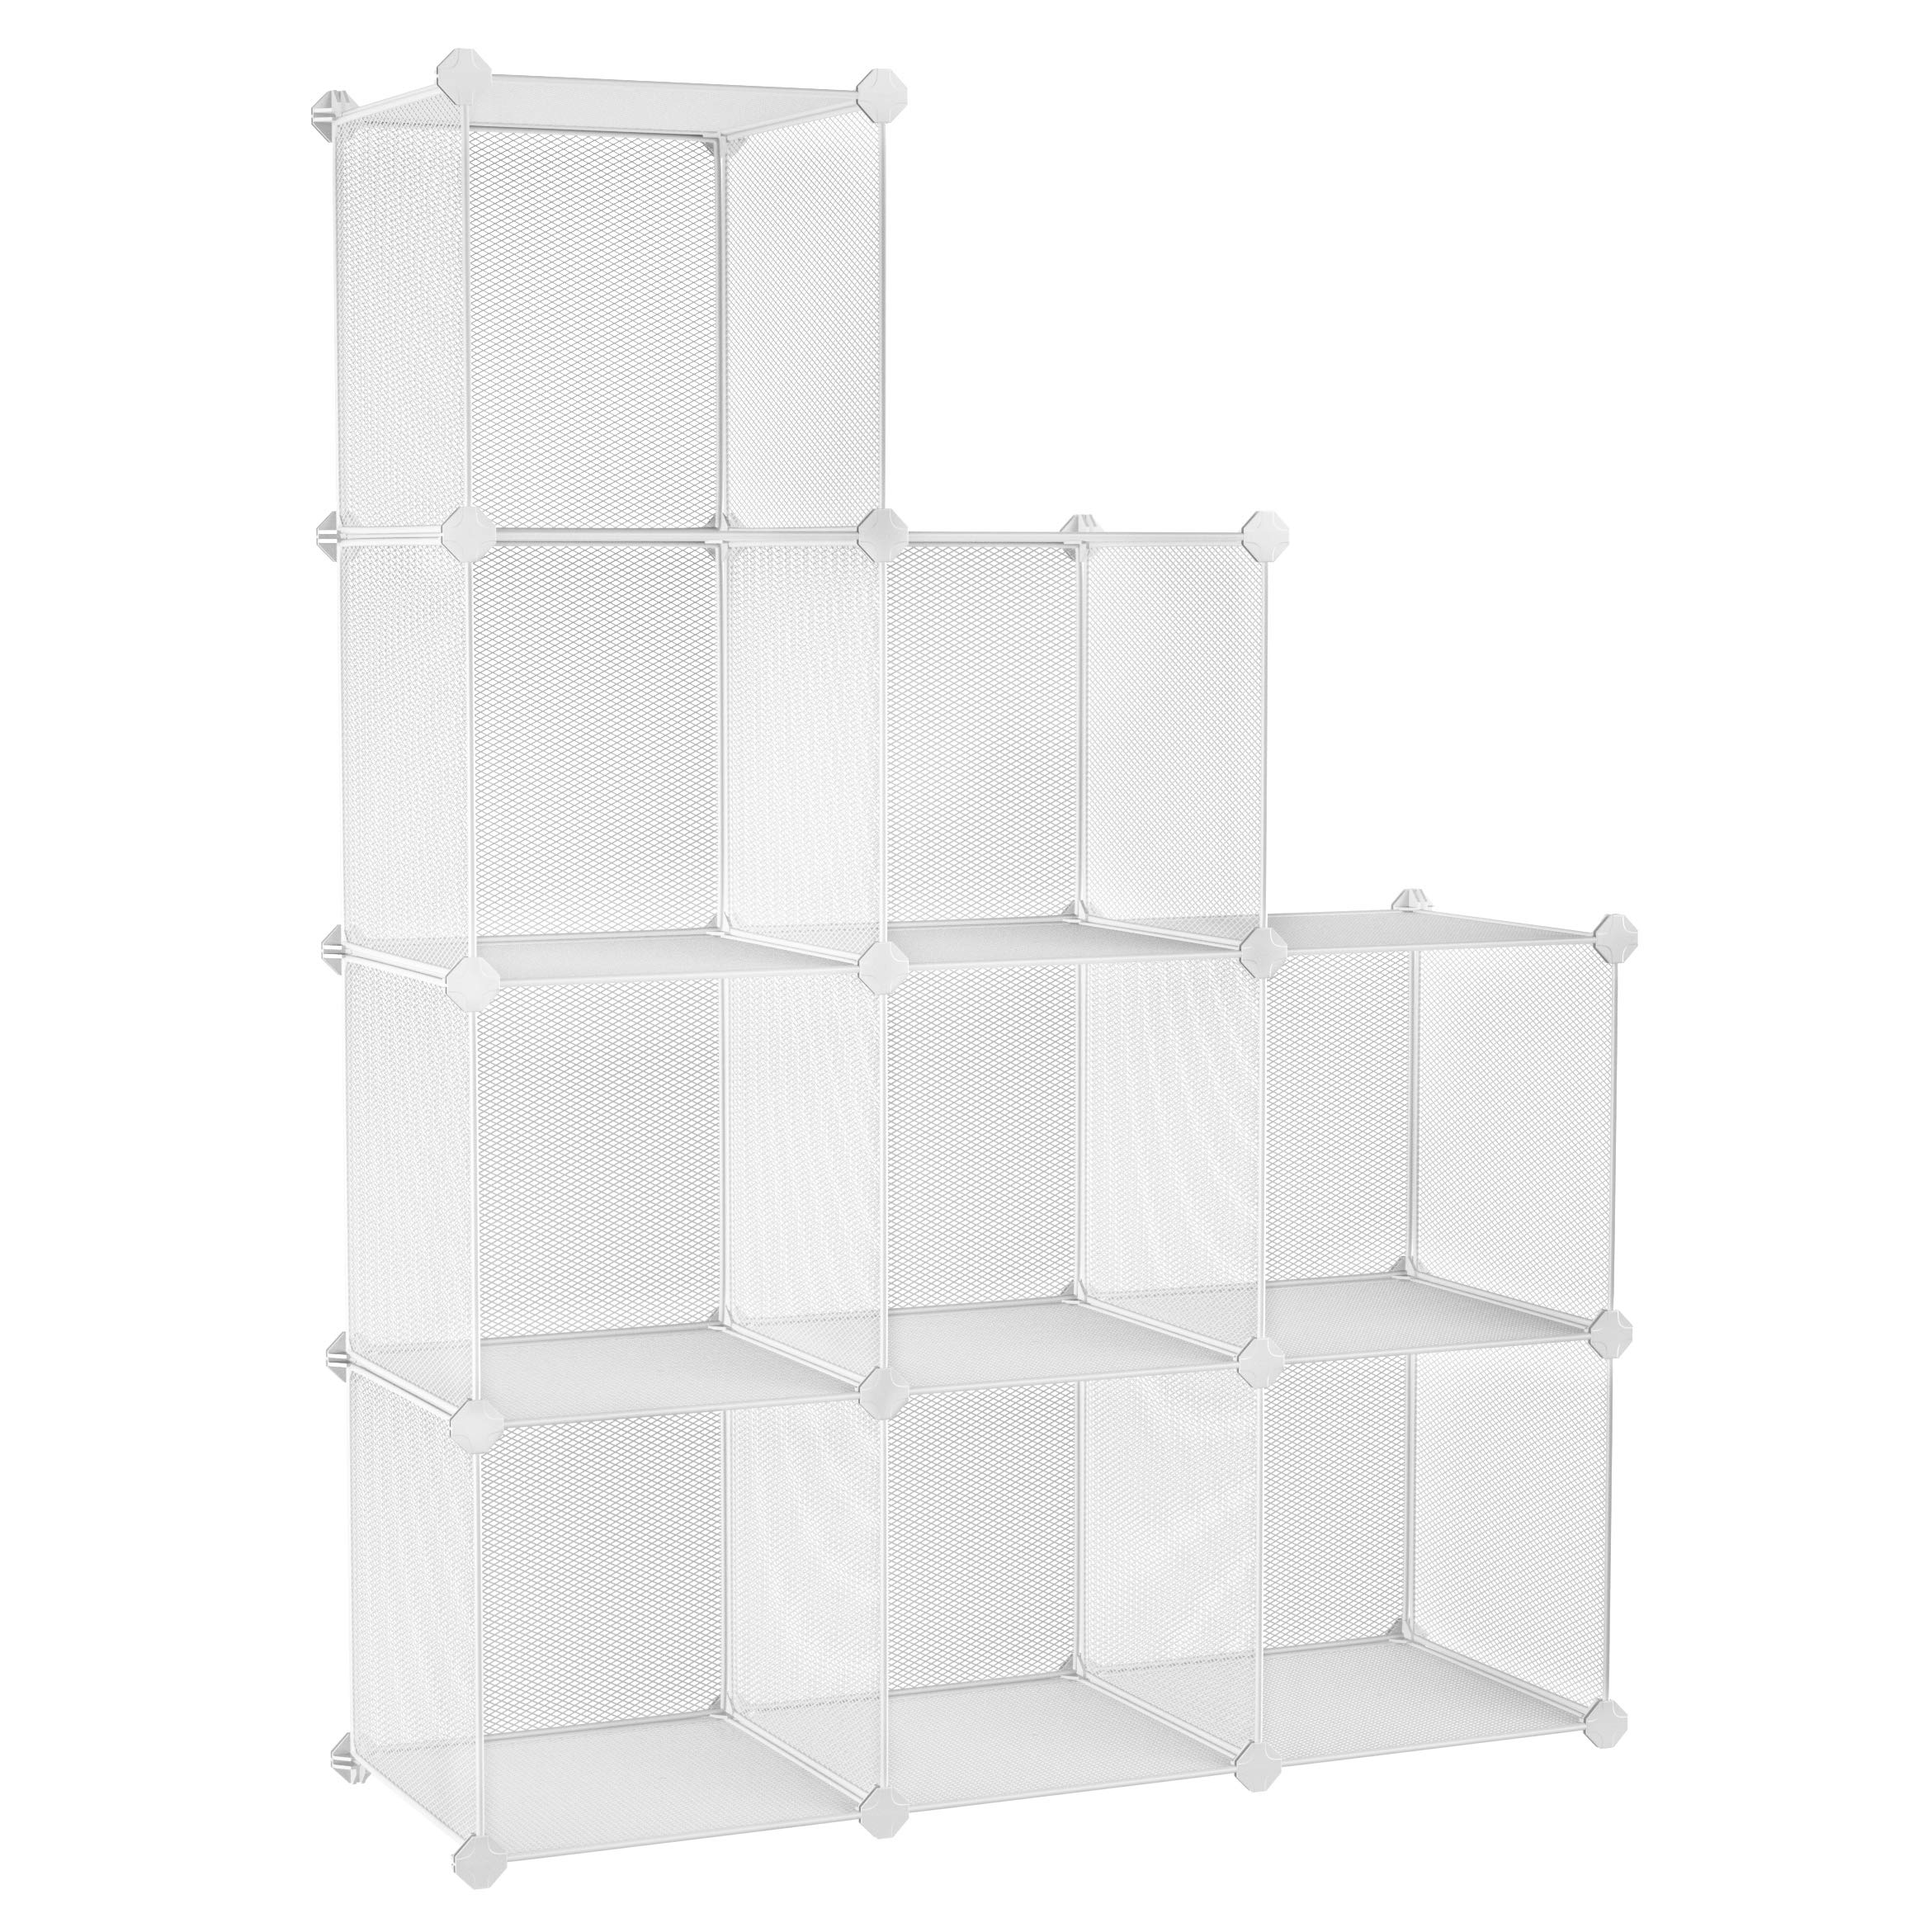 SONGMICS 9-Cube Metal Mesh Storage Cube, Storage Shelves Organizer, Modular Bookcase, DIY Closet Cabinet Shelf for Books, Plant, Toys, Shoes, Clothes 36.6 L x 12.2 W x 48.4 H Inches, White ULPL115WV1 by SONGMICS